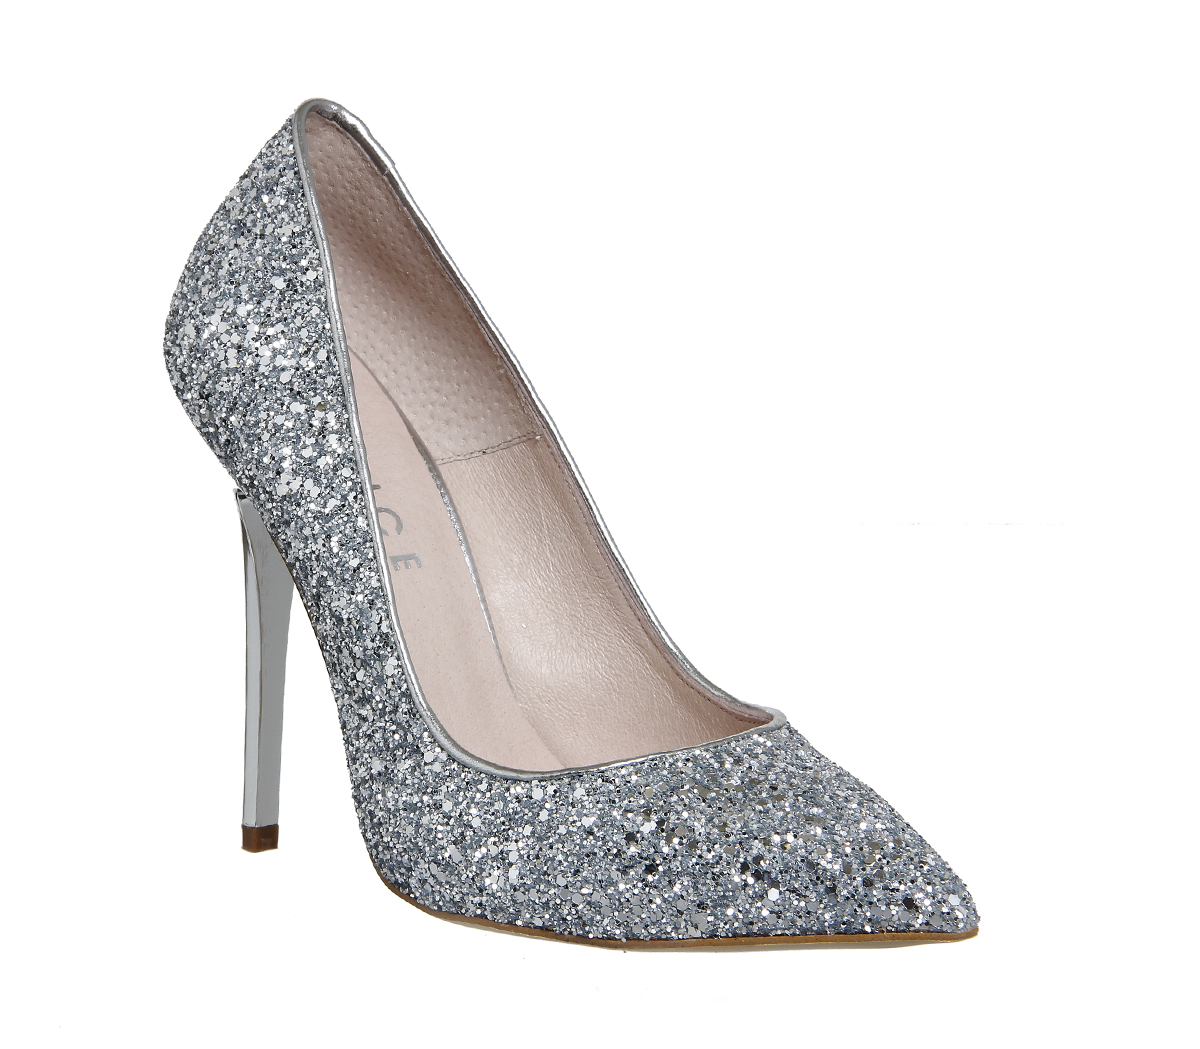 silver glitter heels for young ladies fashionarrowcom